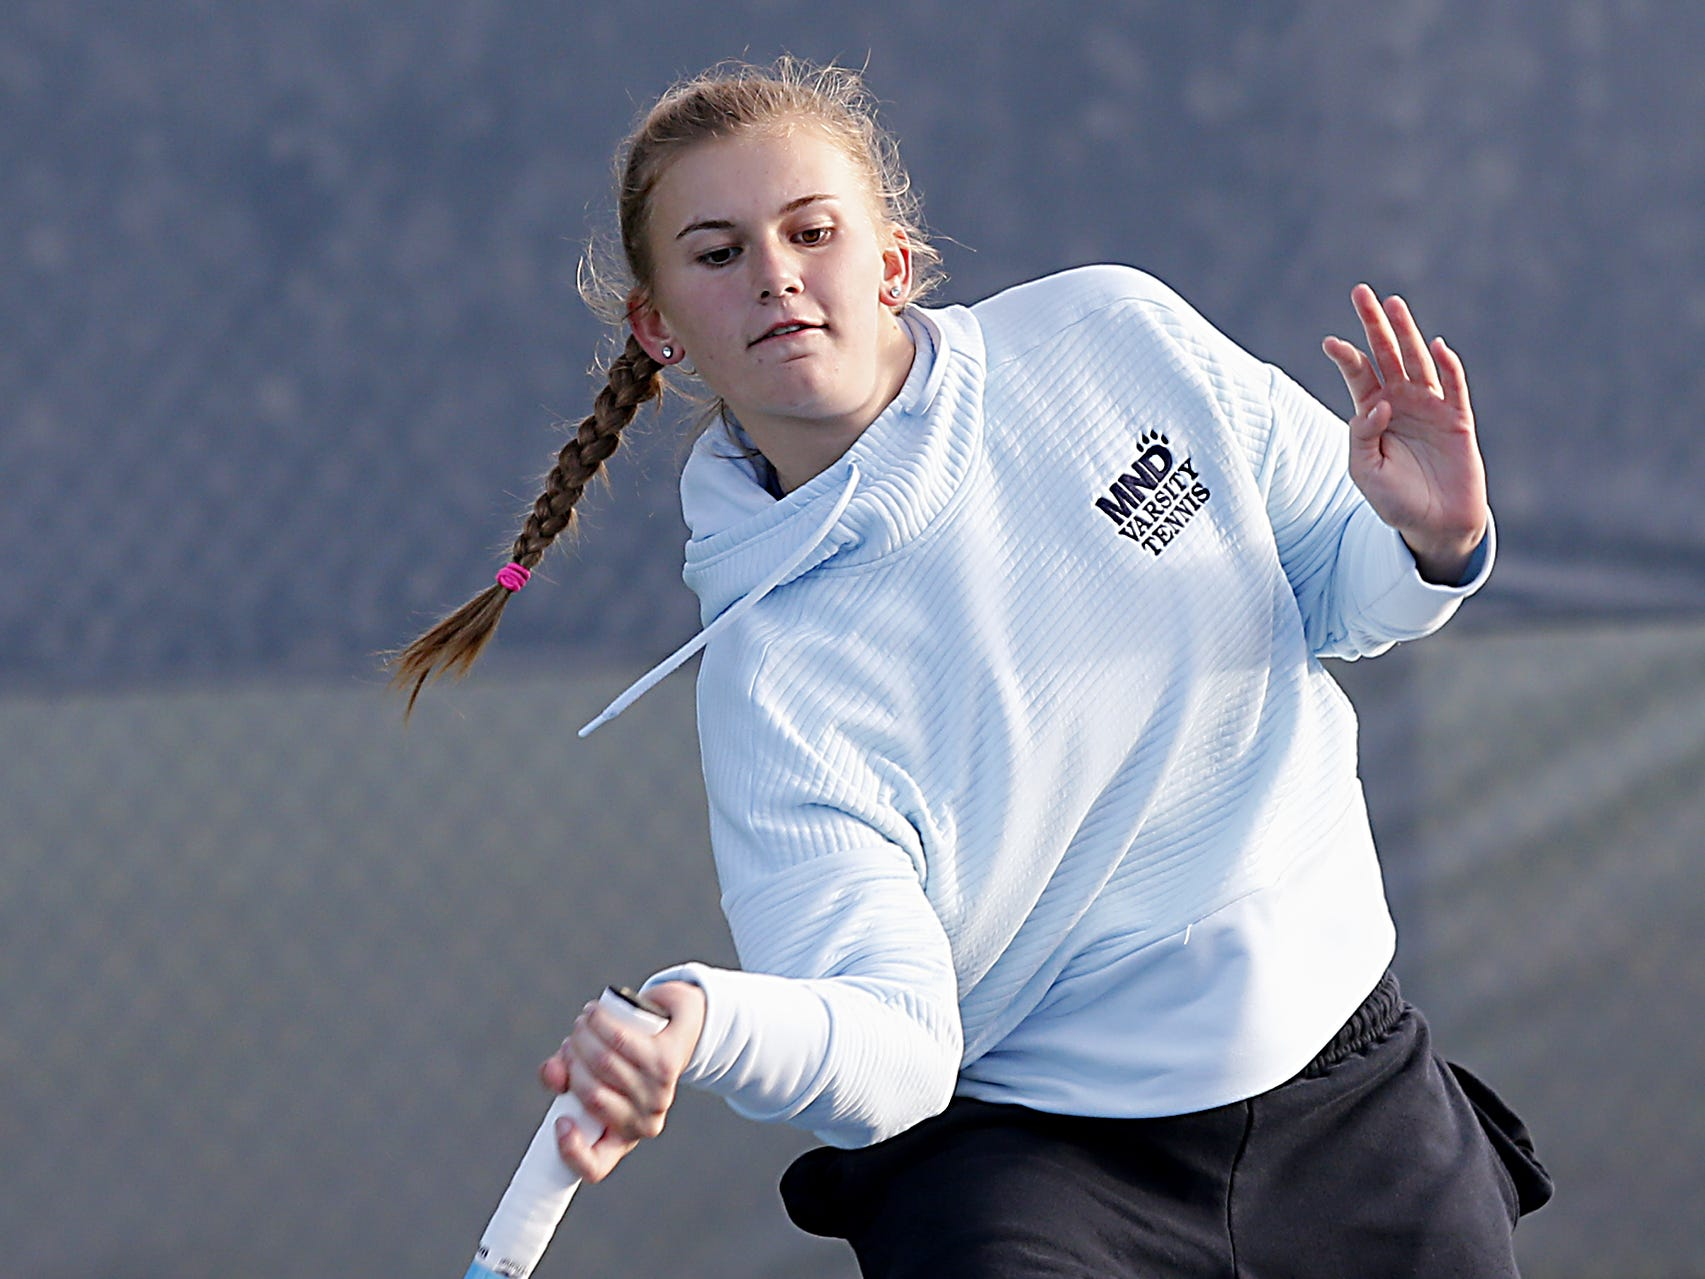 Kelli Niehaus, of Mount Notre Dame, returns a volley during her Division I singles bracket at the Lindner Family Tennis Center in Mason Friday, Oct. 19, 2018.